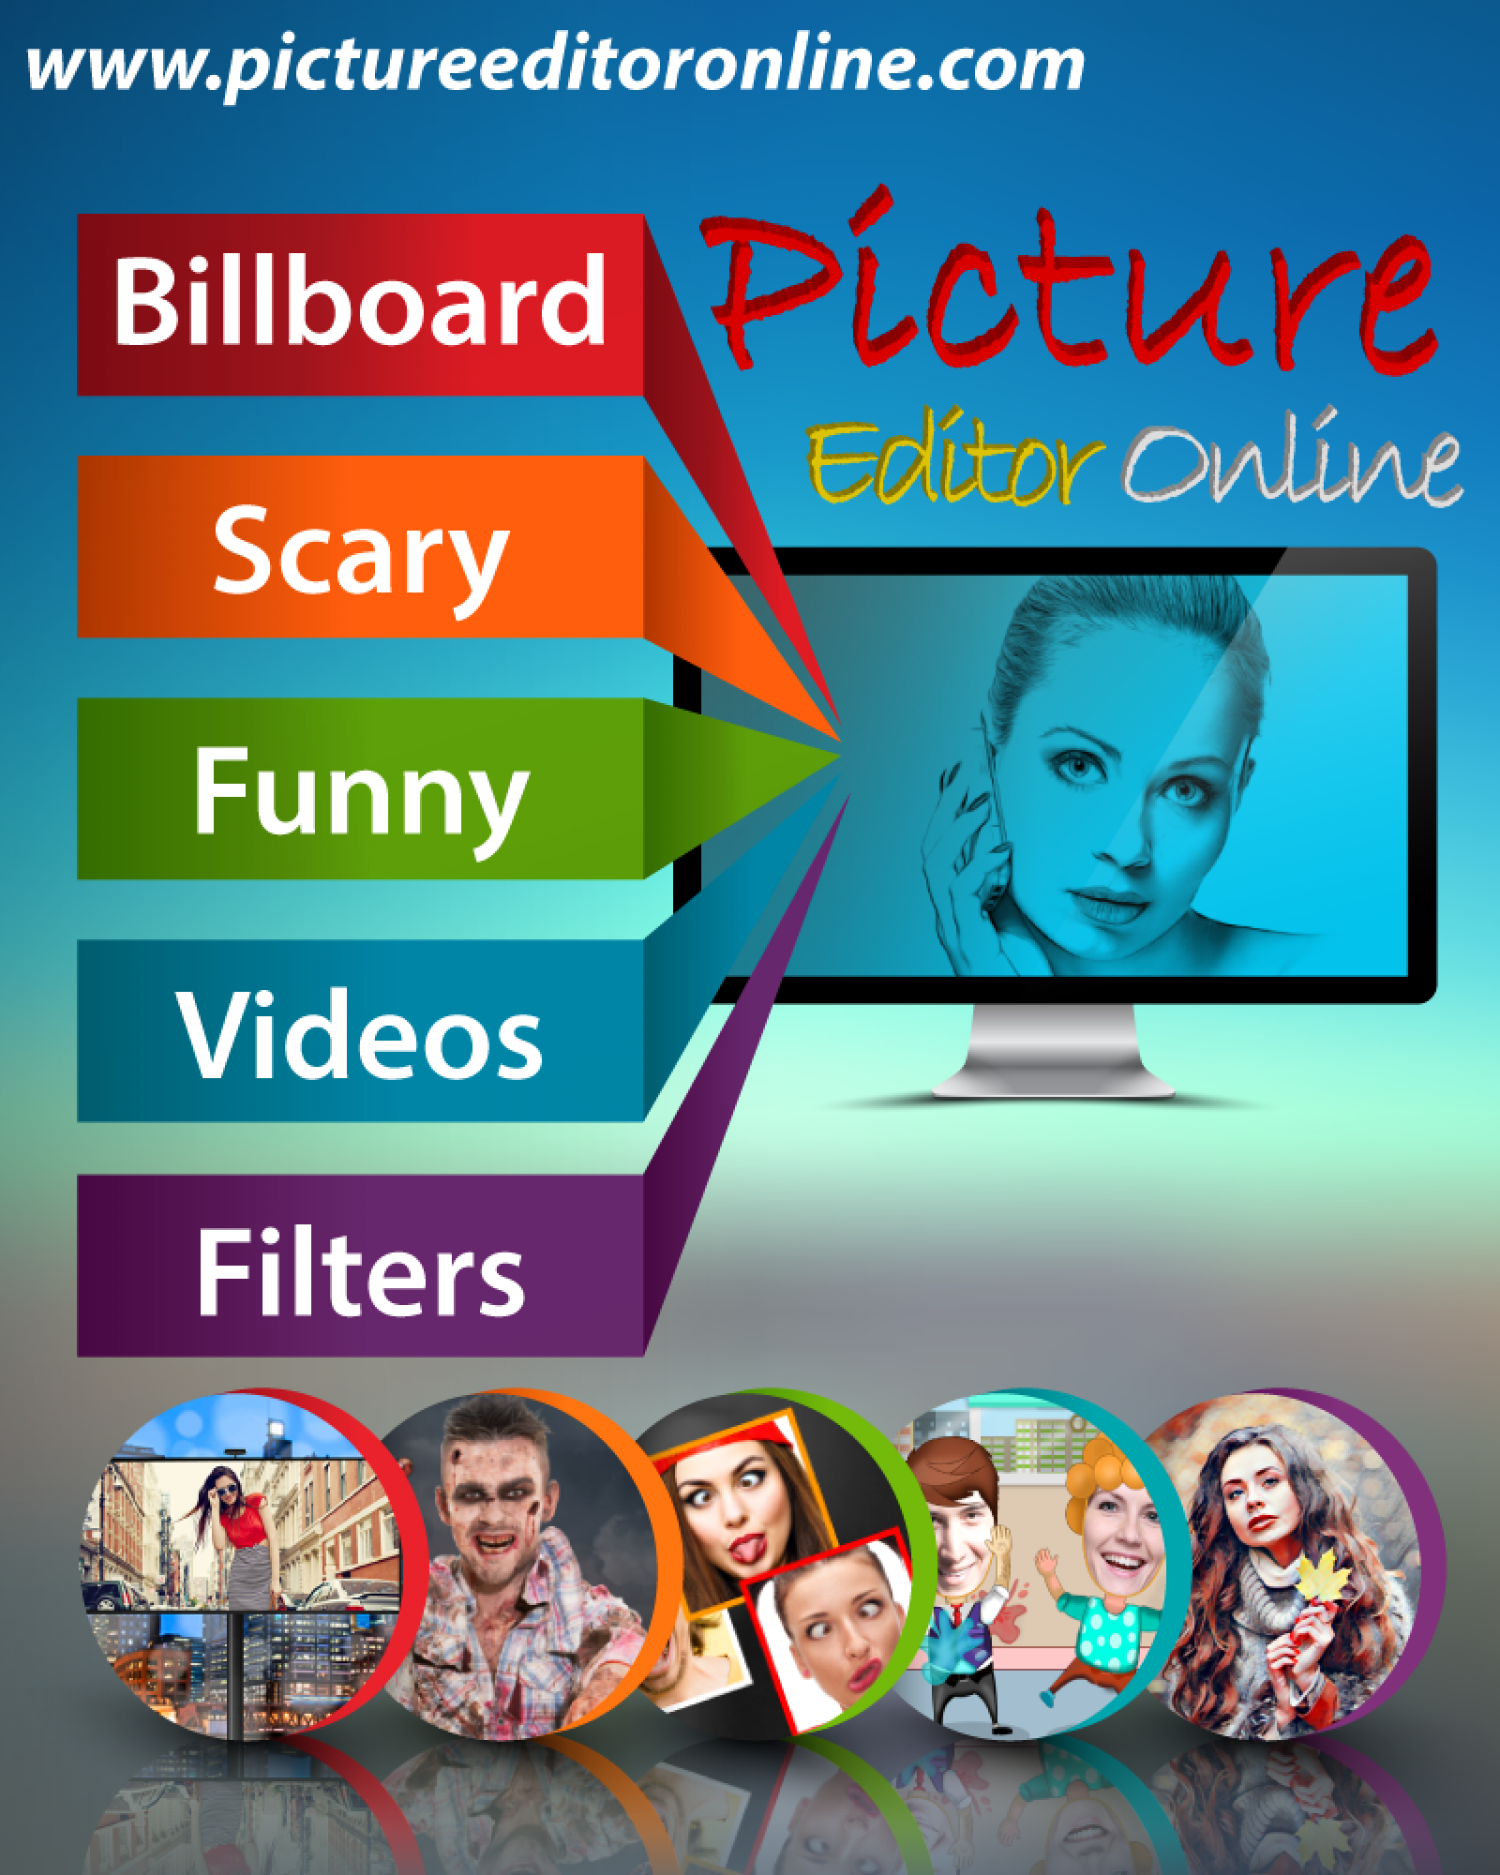 Waoo Scary, funny video, filter billboard effects are awesome effects on Picture Editor Online  Infographic